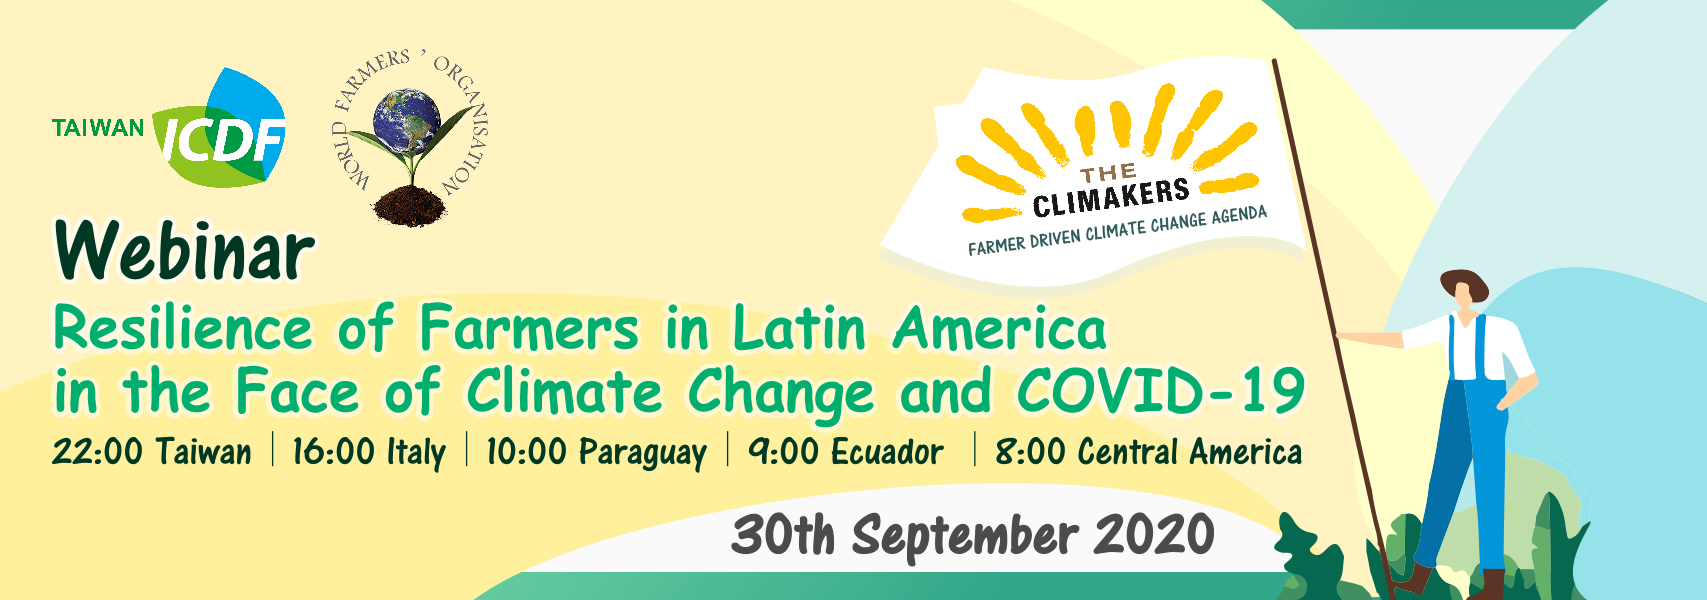 Resilience of Farmers in Latin America in the Face of Climate Change and COVID-19